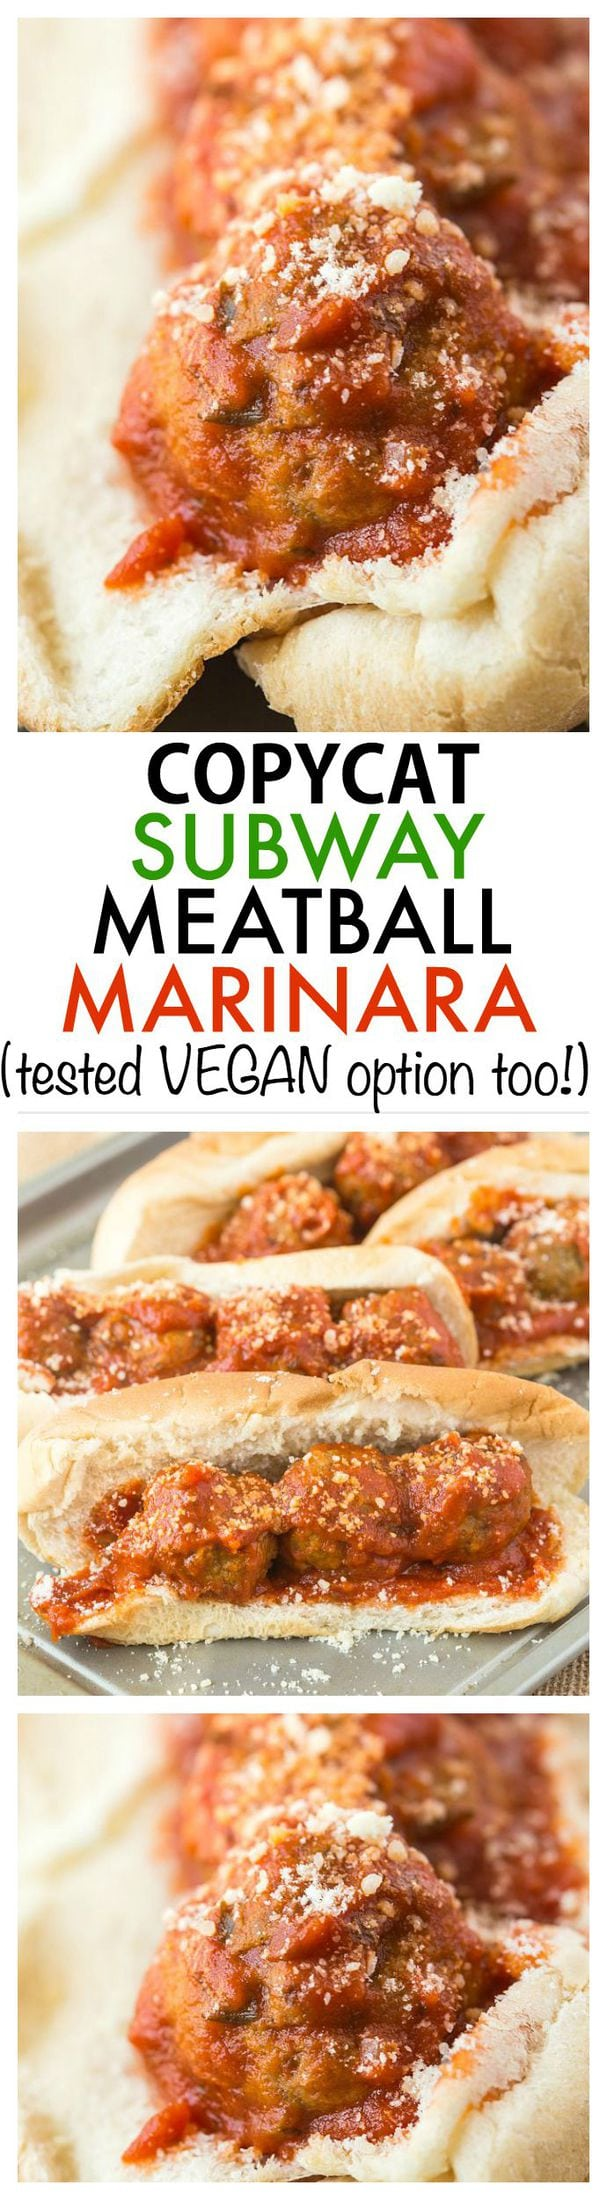 ... sriracha marinara and sriracha marinara with marinara with meatballs